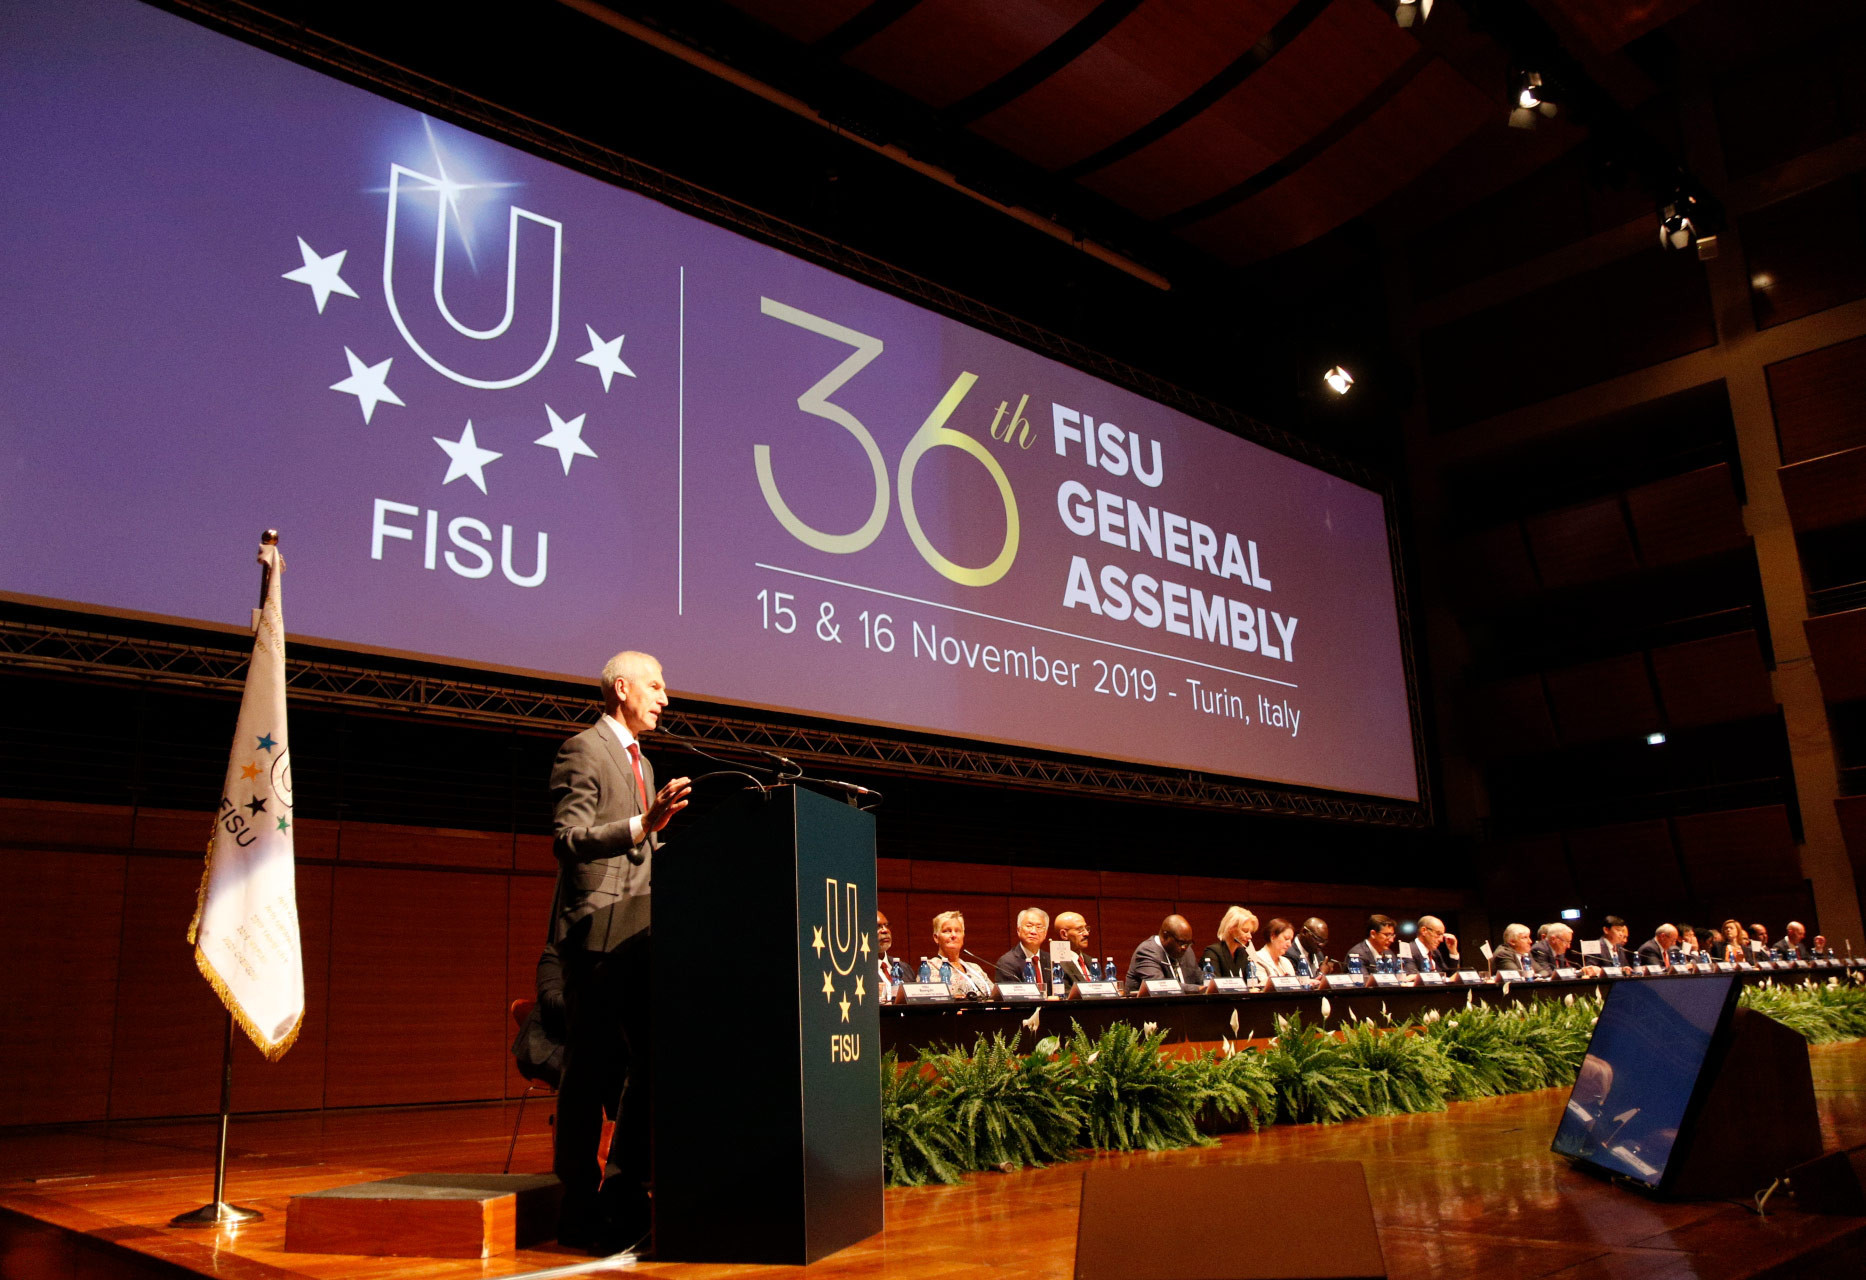 FISU President FISU General Assembly highlights progress under President Oleg Matytsin opened the 36th edition of the organisation's General Assembly in Turin today ©FISU